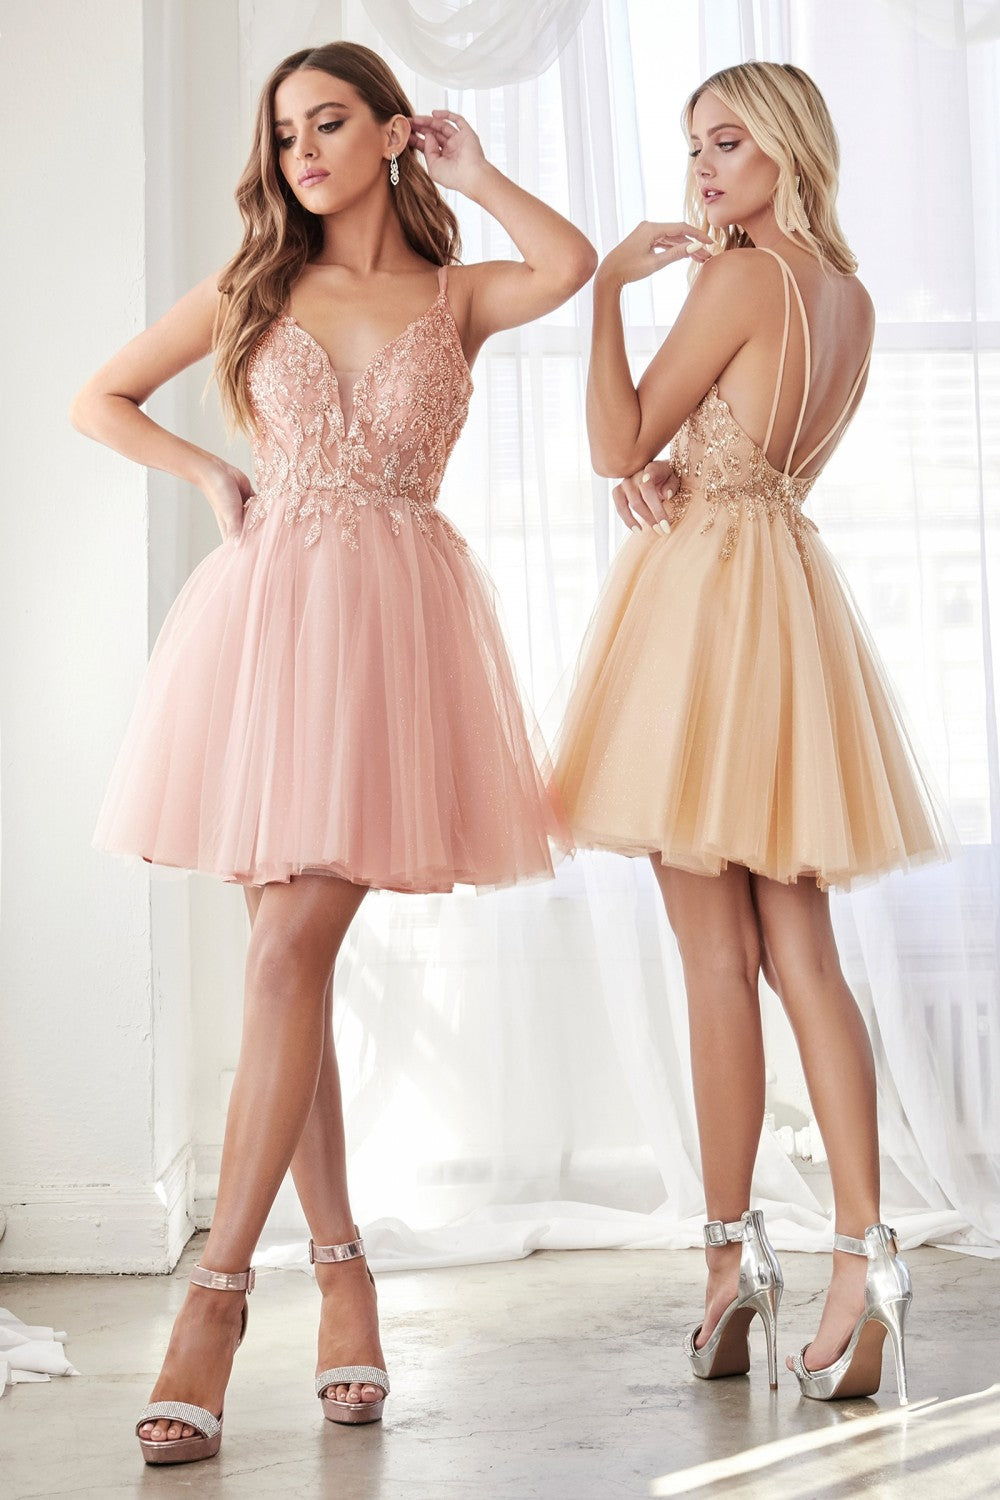 CD CD0155 - Short A-Line Party Dress with Embellished Top & Glitter Tulle Skirt - Diggz Prom